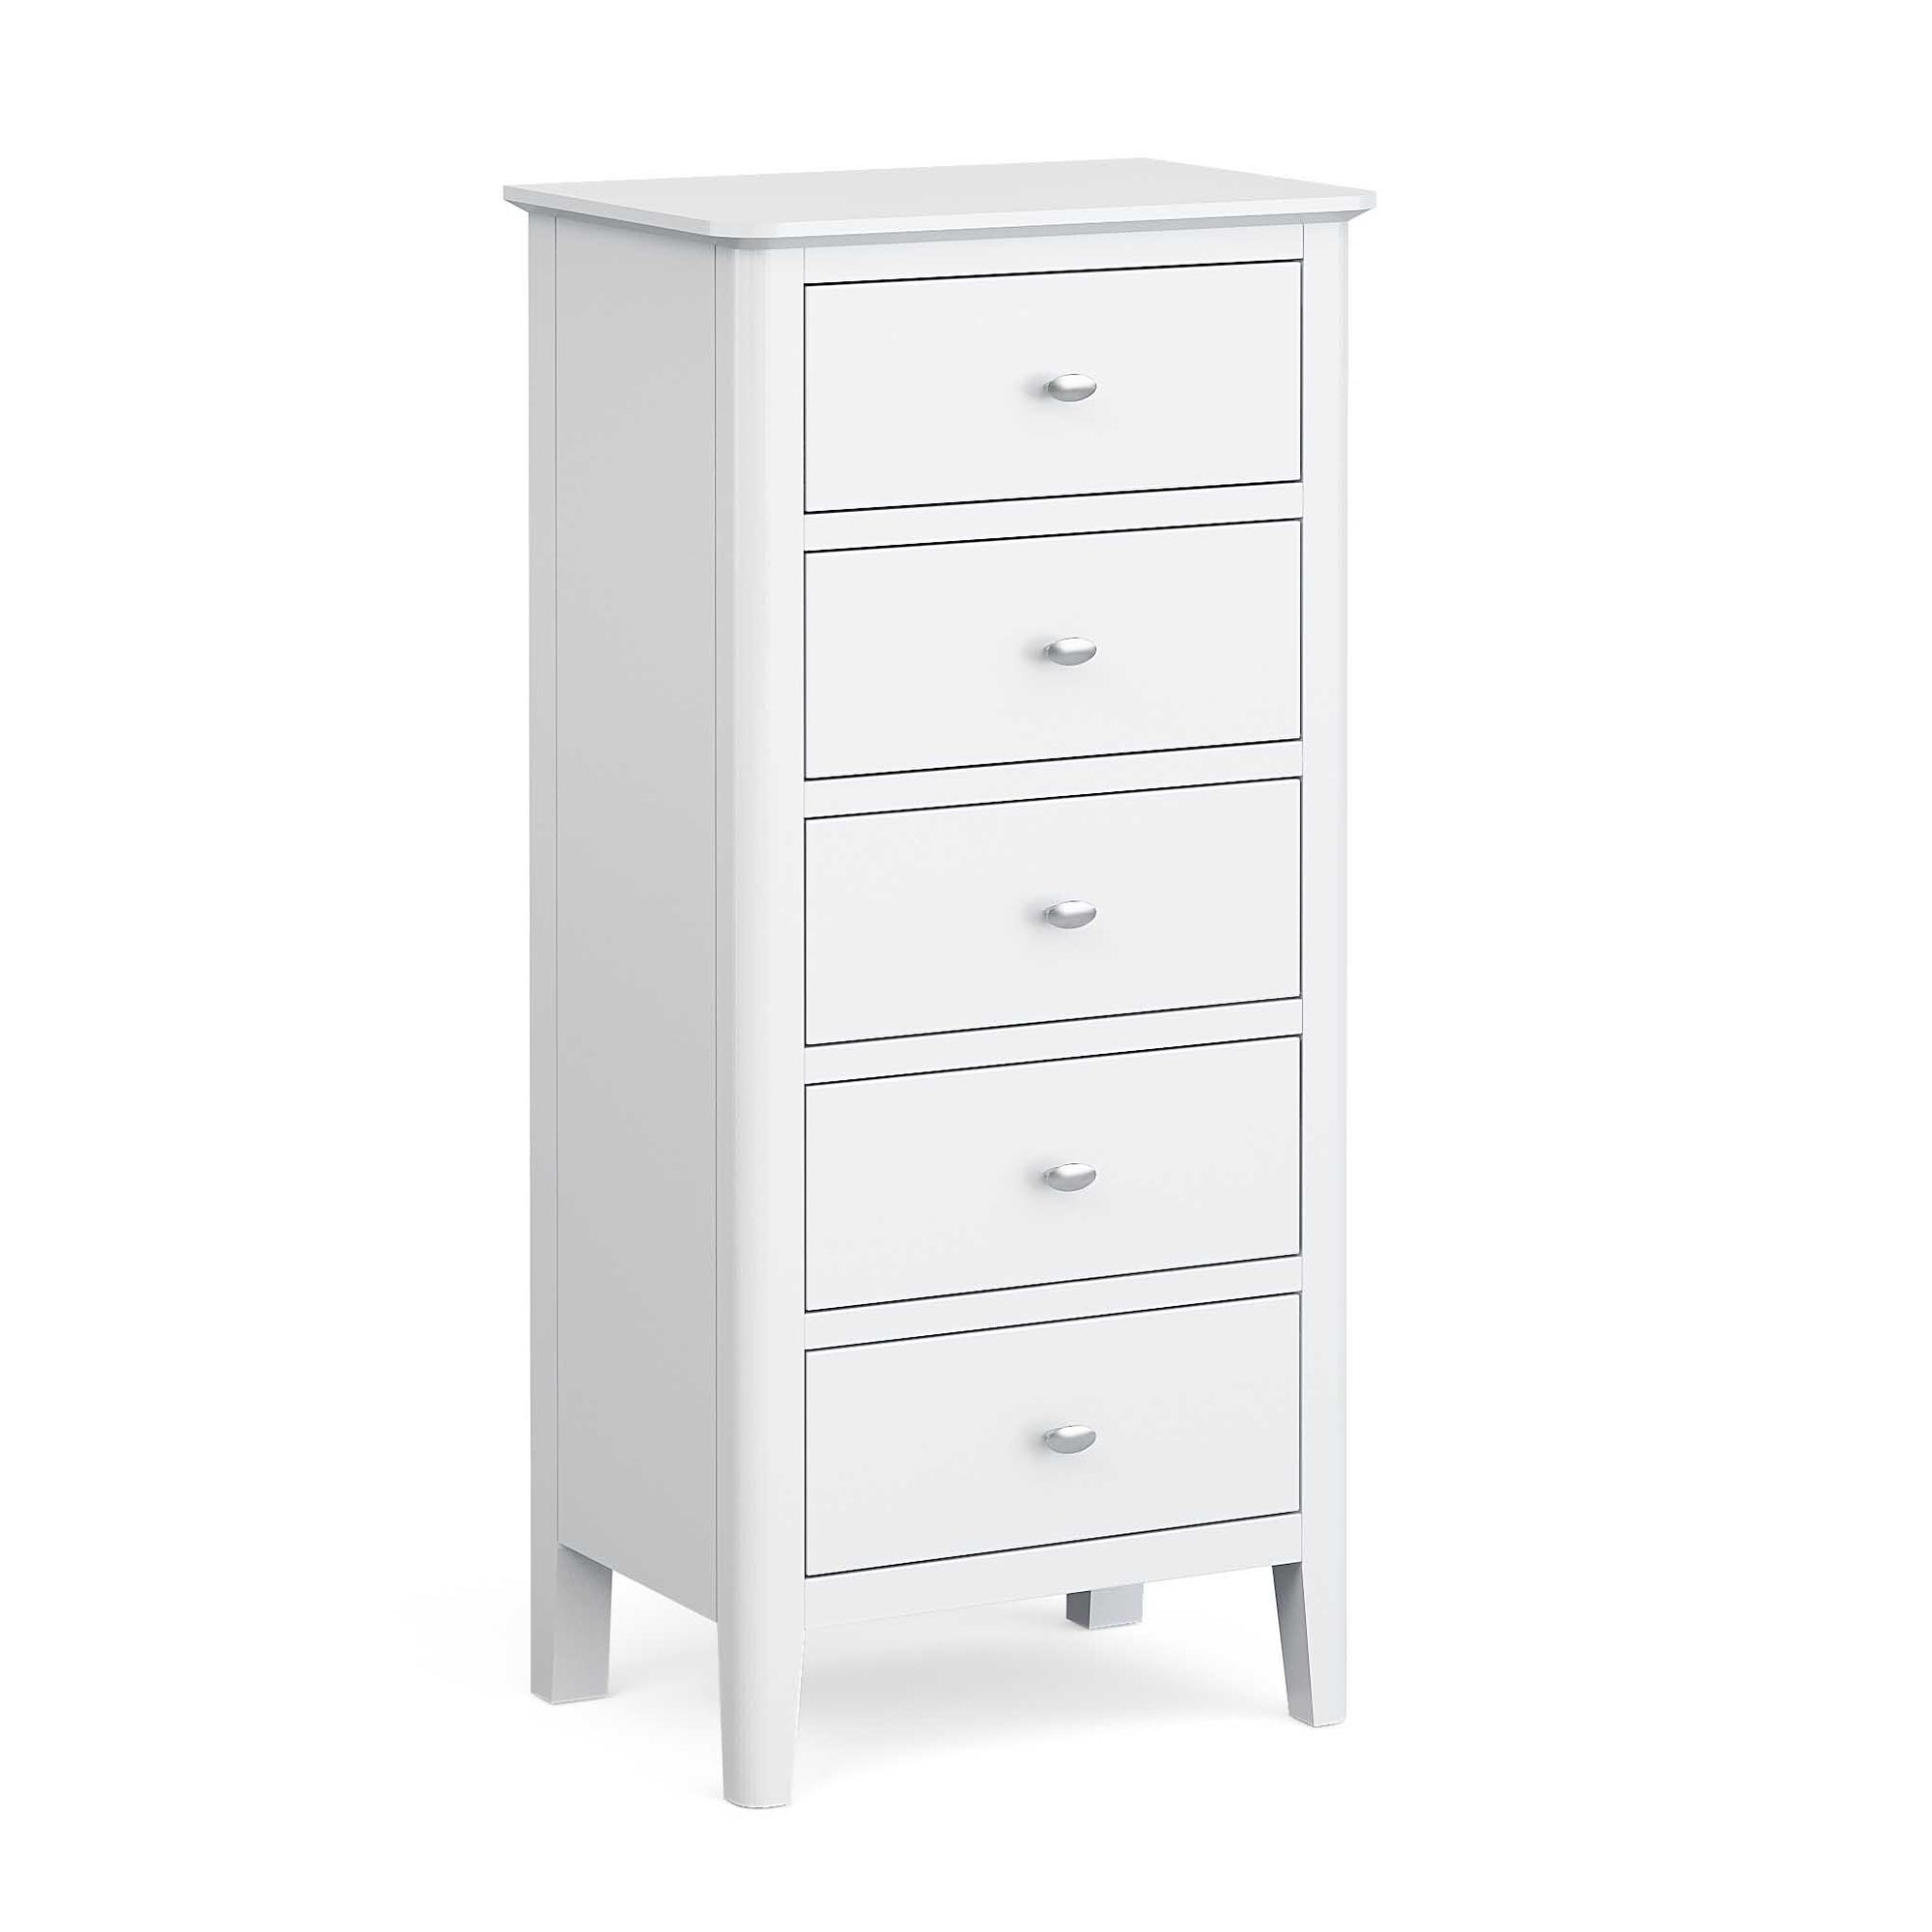 Chester White 5 Drawer Tallboy by Roseland Furniture